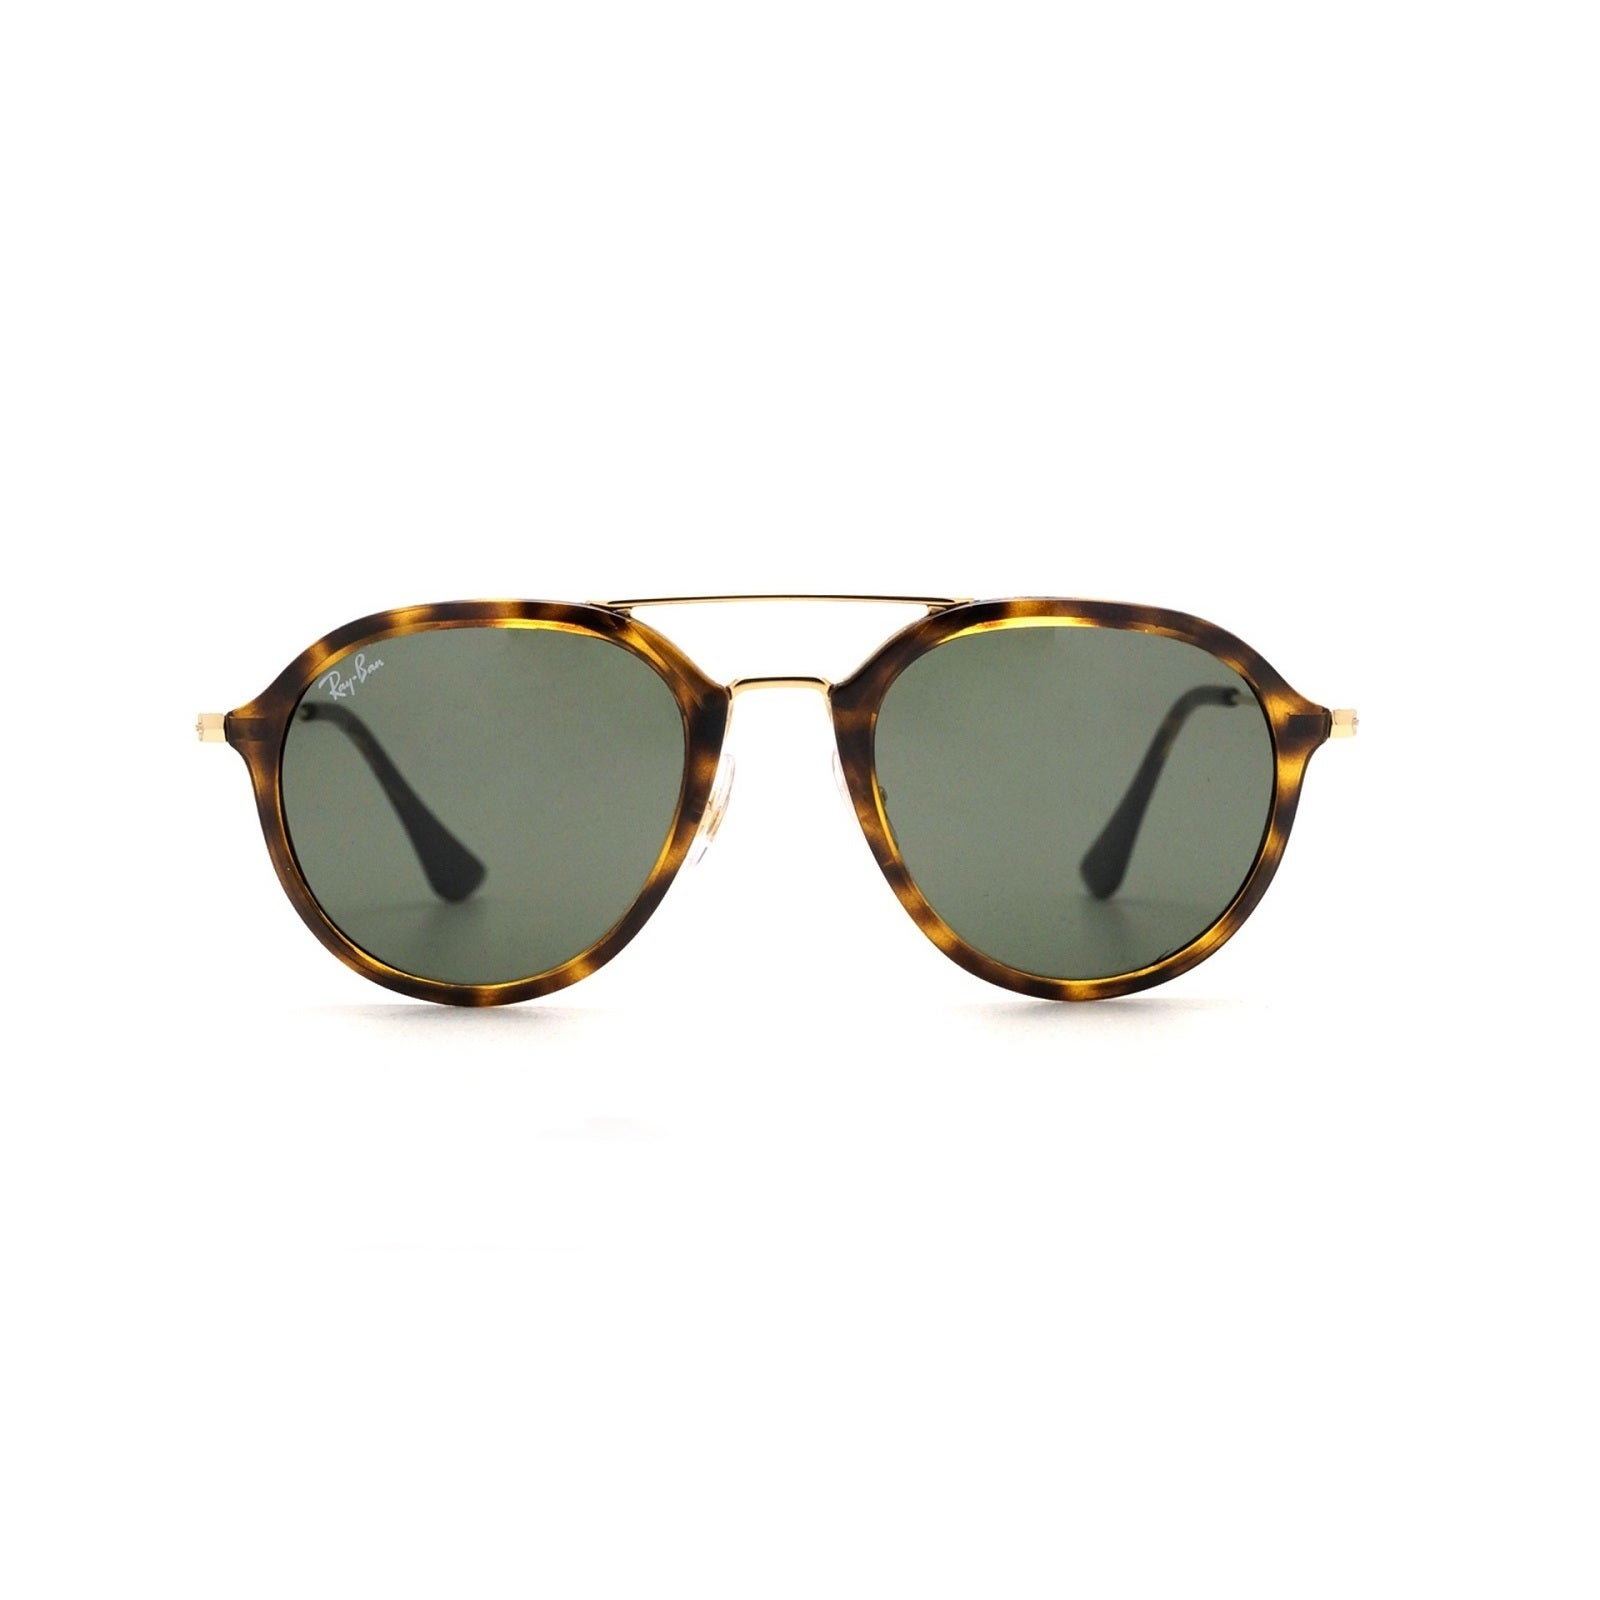 ad1a1279da6 Shop Ray-Ban RB4253 710 Unisex Tortoise Gold Frame Green Classic 53mm Lens  Sunglasses - Free Shipping Today - Overstock.com - 15297153